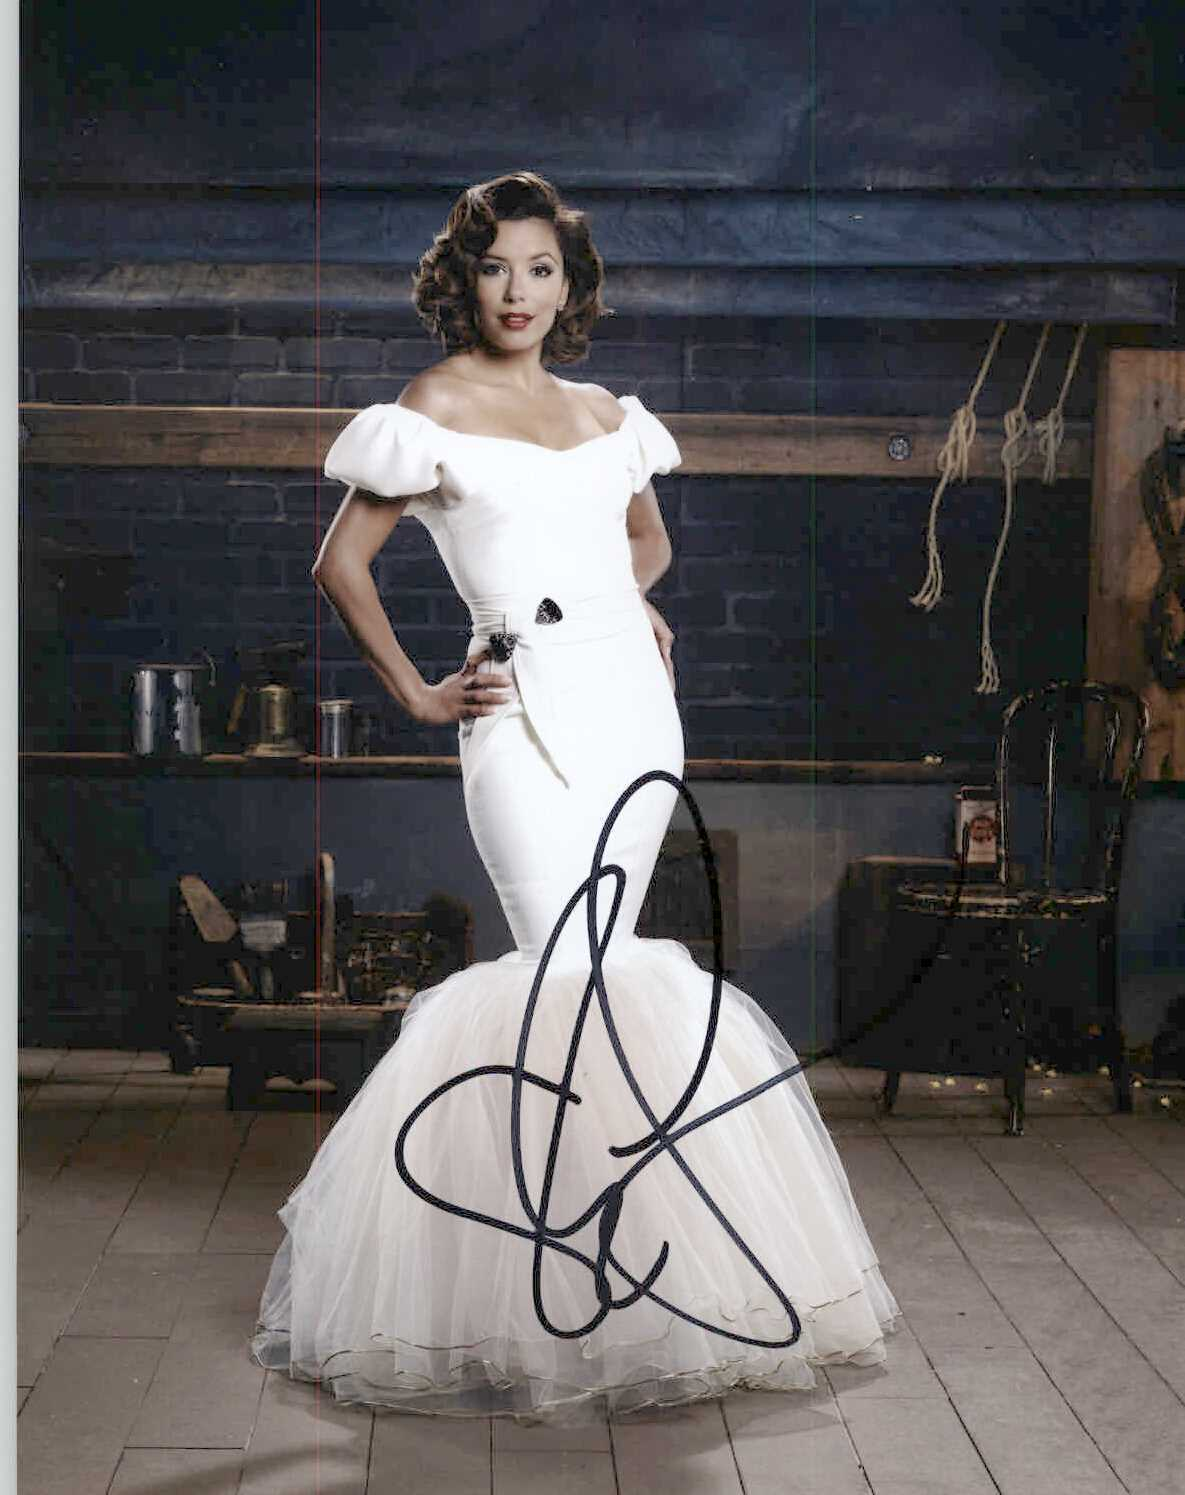 Primary image for Eva Longoria Signed Autographed Glossy 8x10 Photo #7